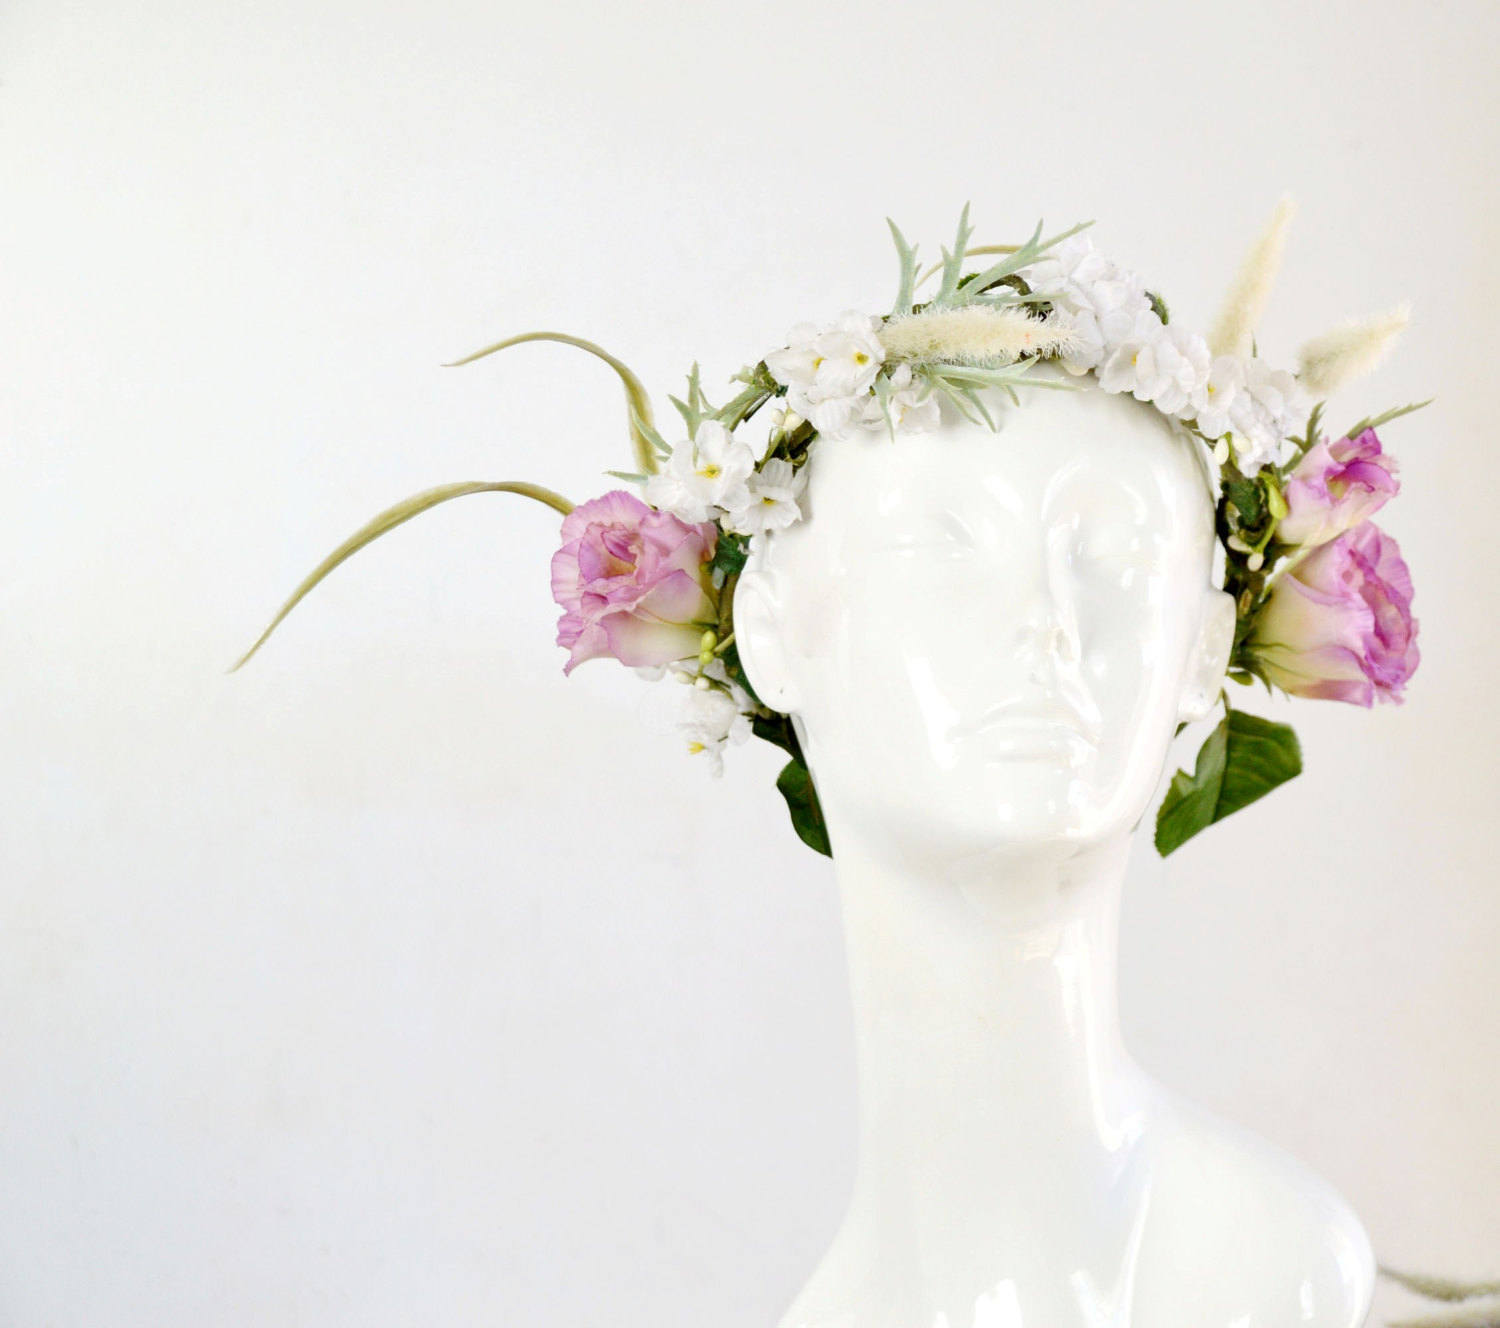 bridal head piece with pink flowers, green leaves, stems, and vines